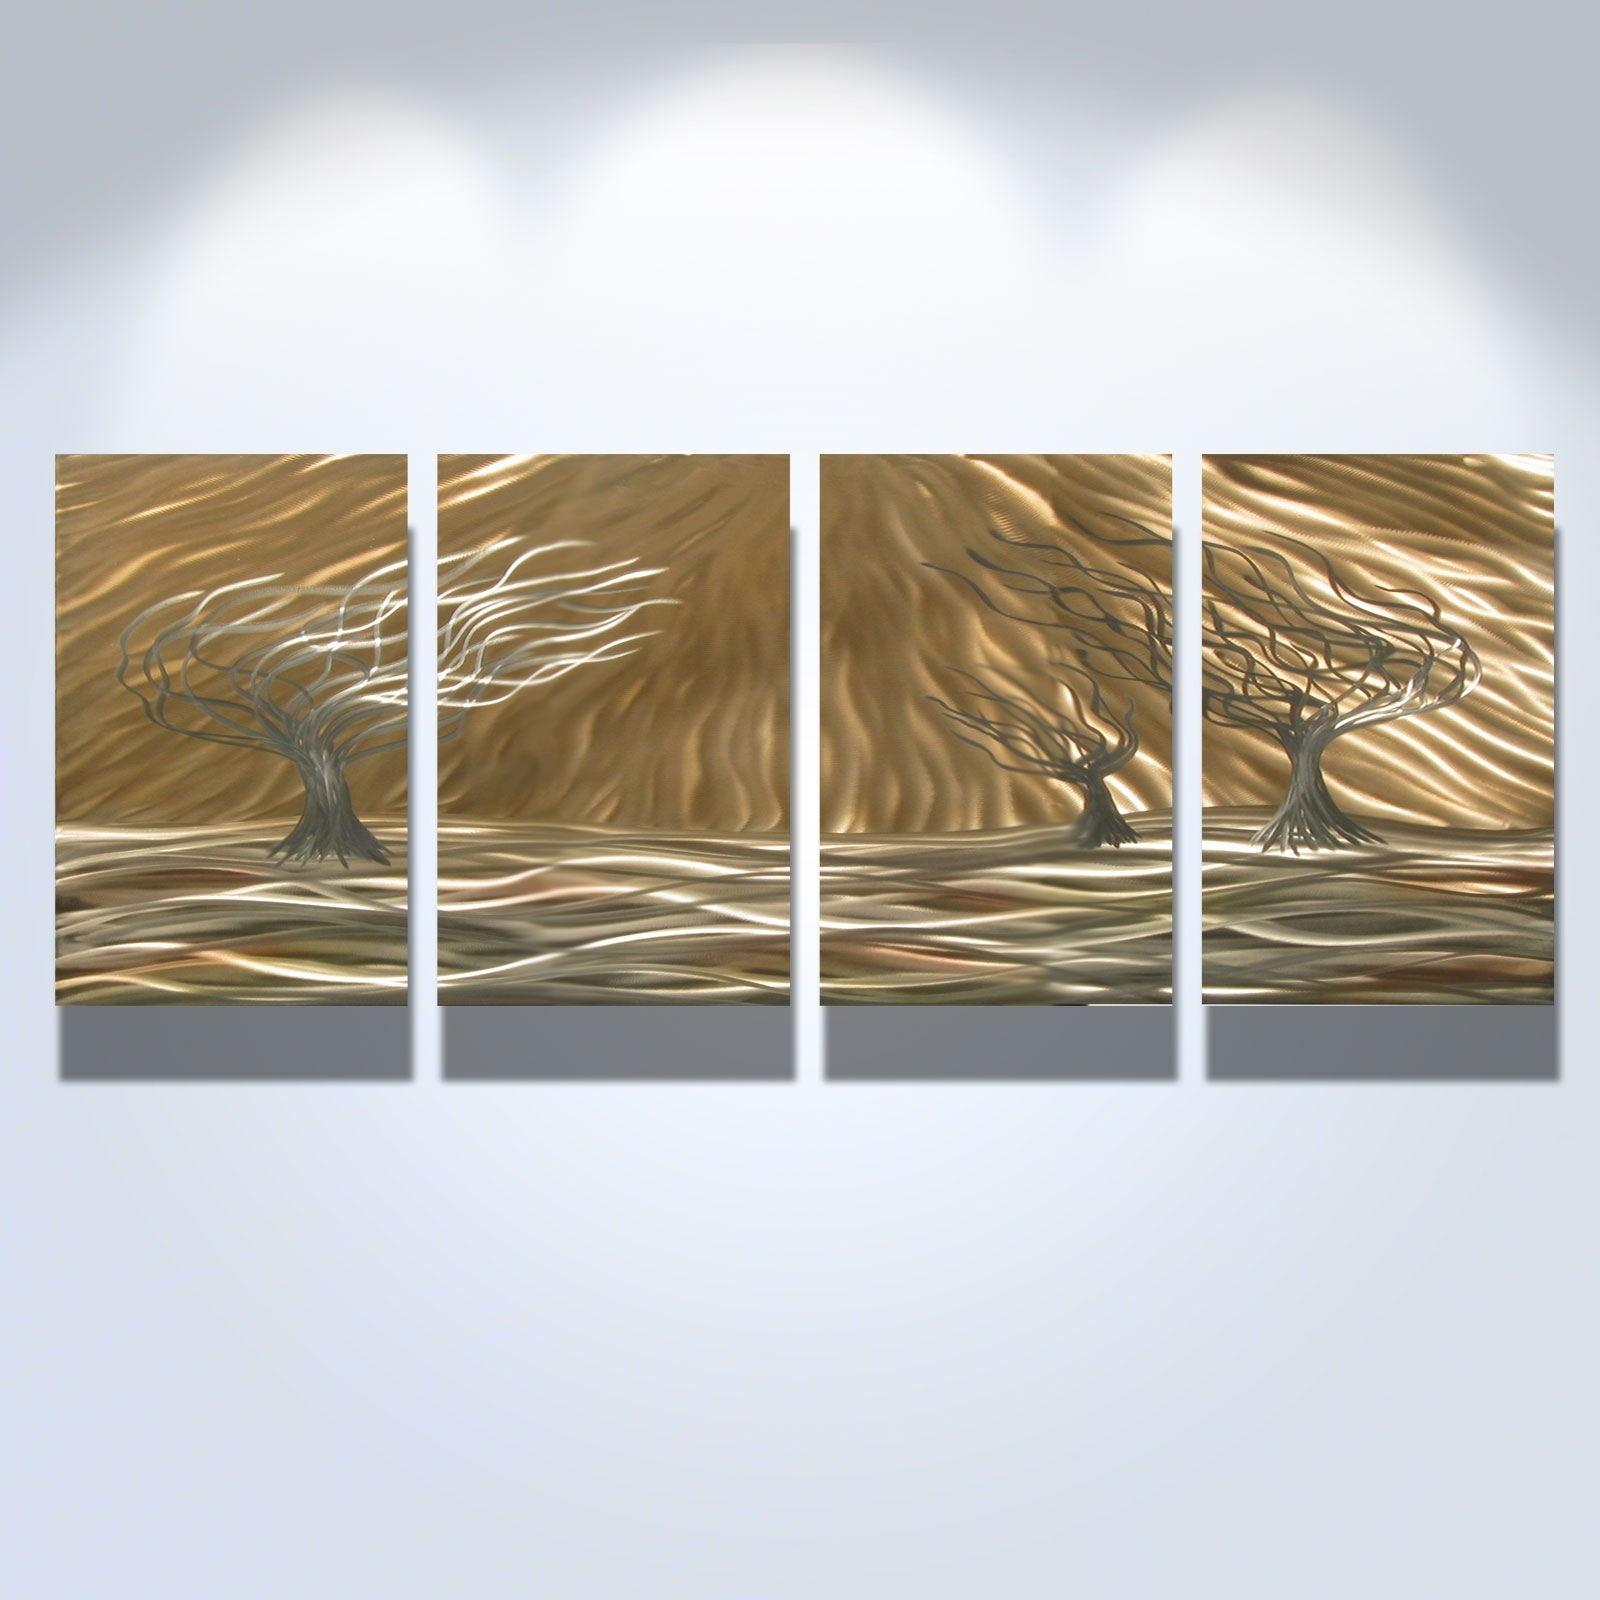 3 Trees 4 Panel – Abstract Metal Wall Art Contemporary Modern Inside Current Contemporary Abstract Wall Art (View 13 of 20)